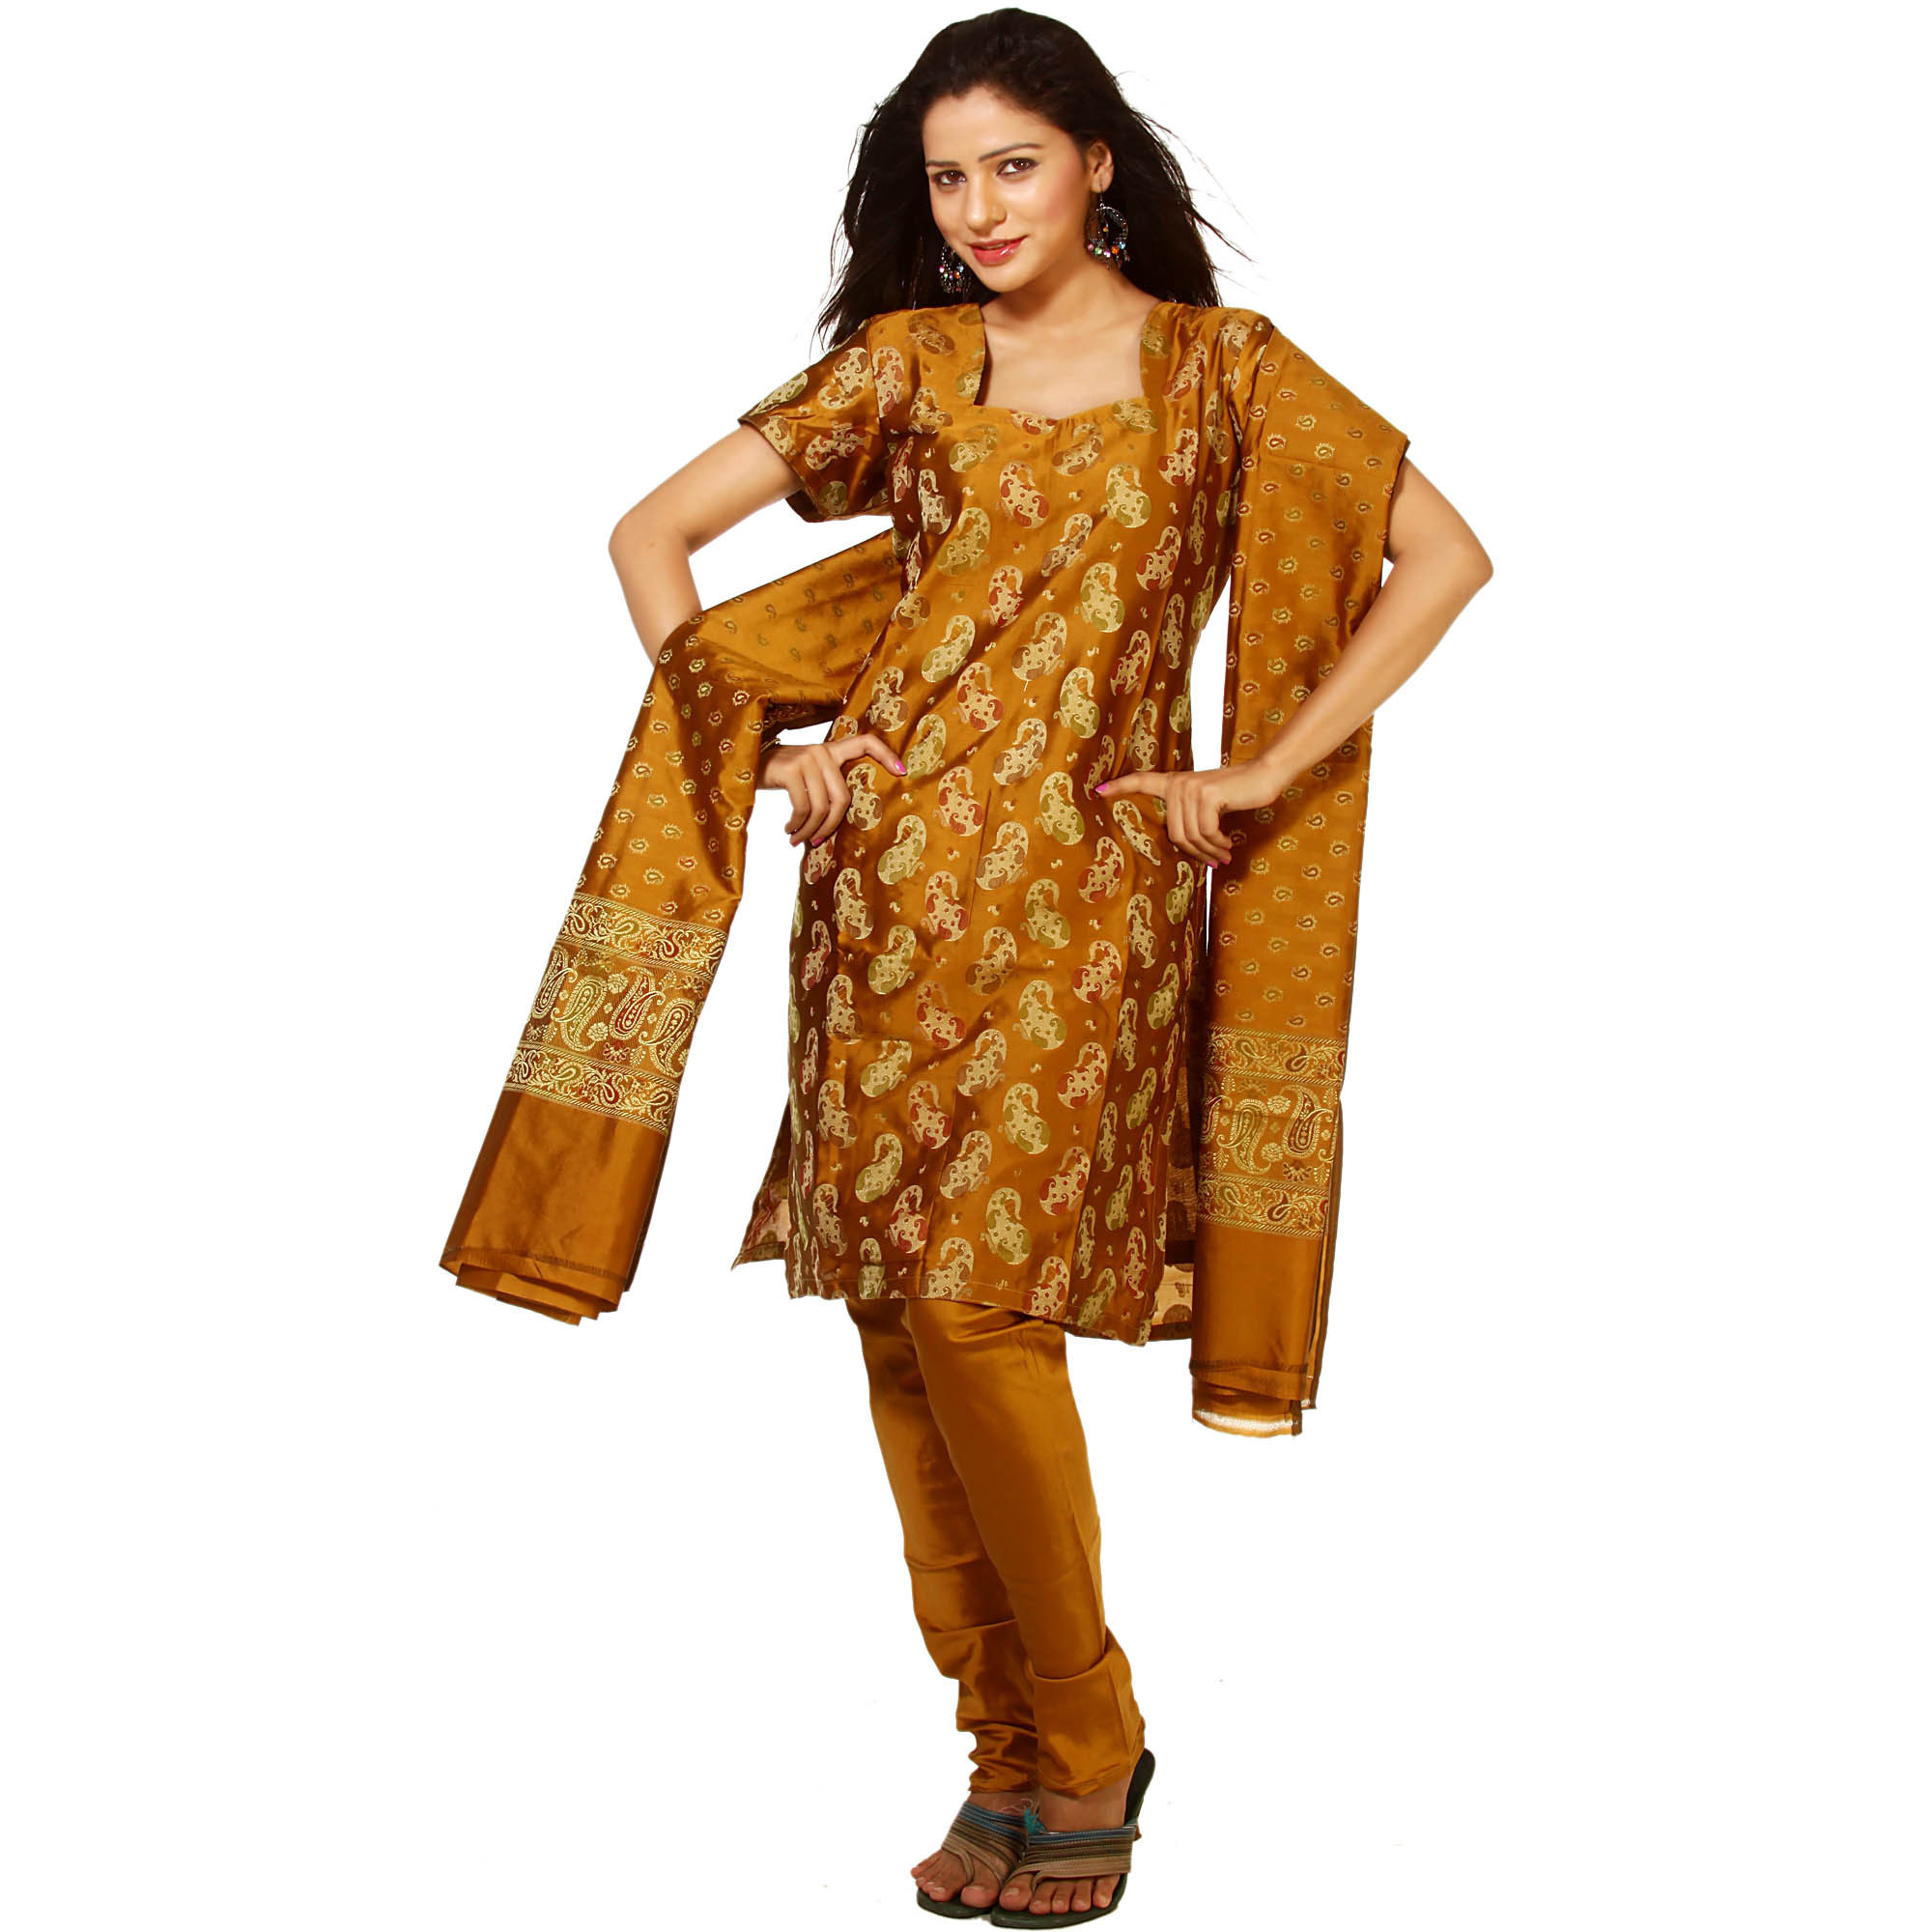 Mustard Banarasi Salwar Kameez Suit Fabric with All-Over Woven Paisleys